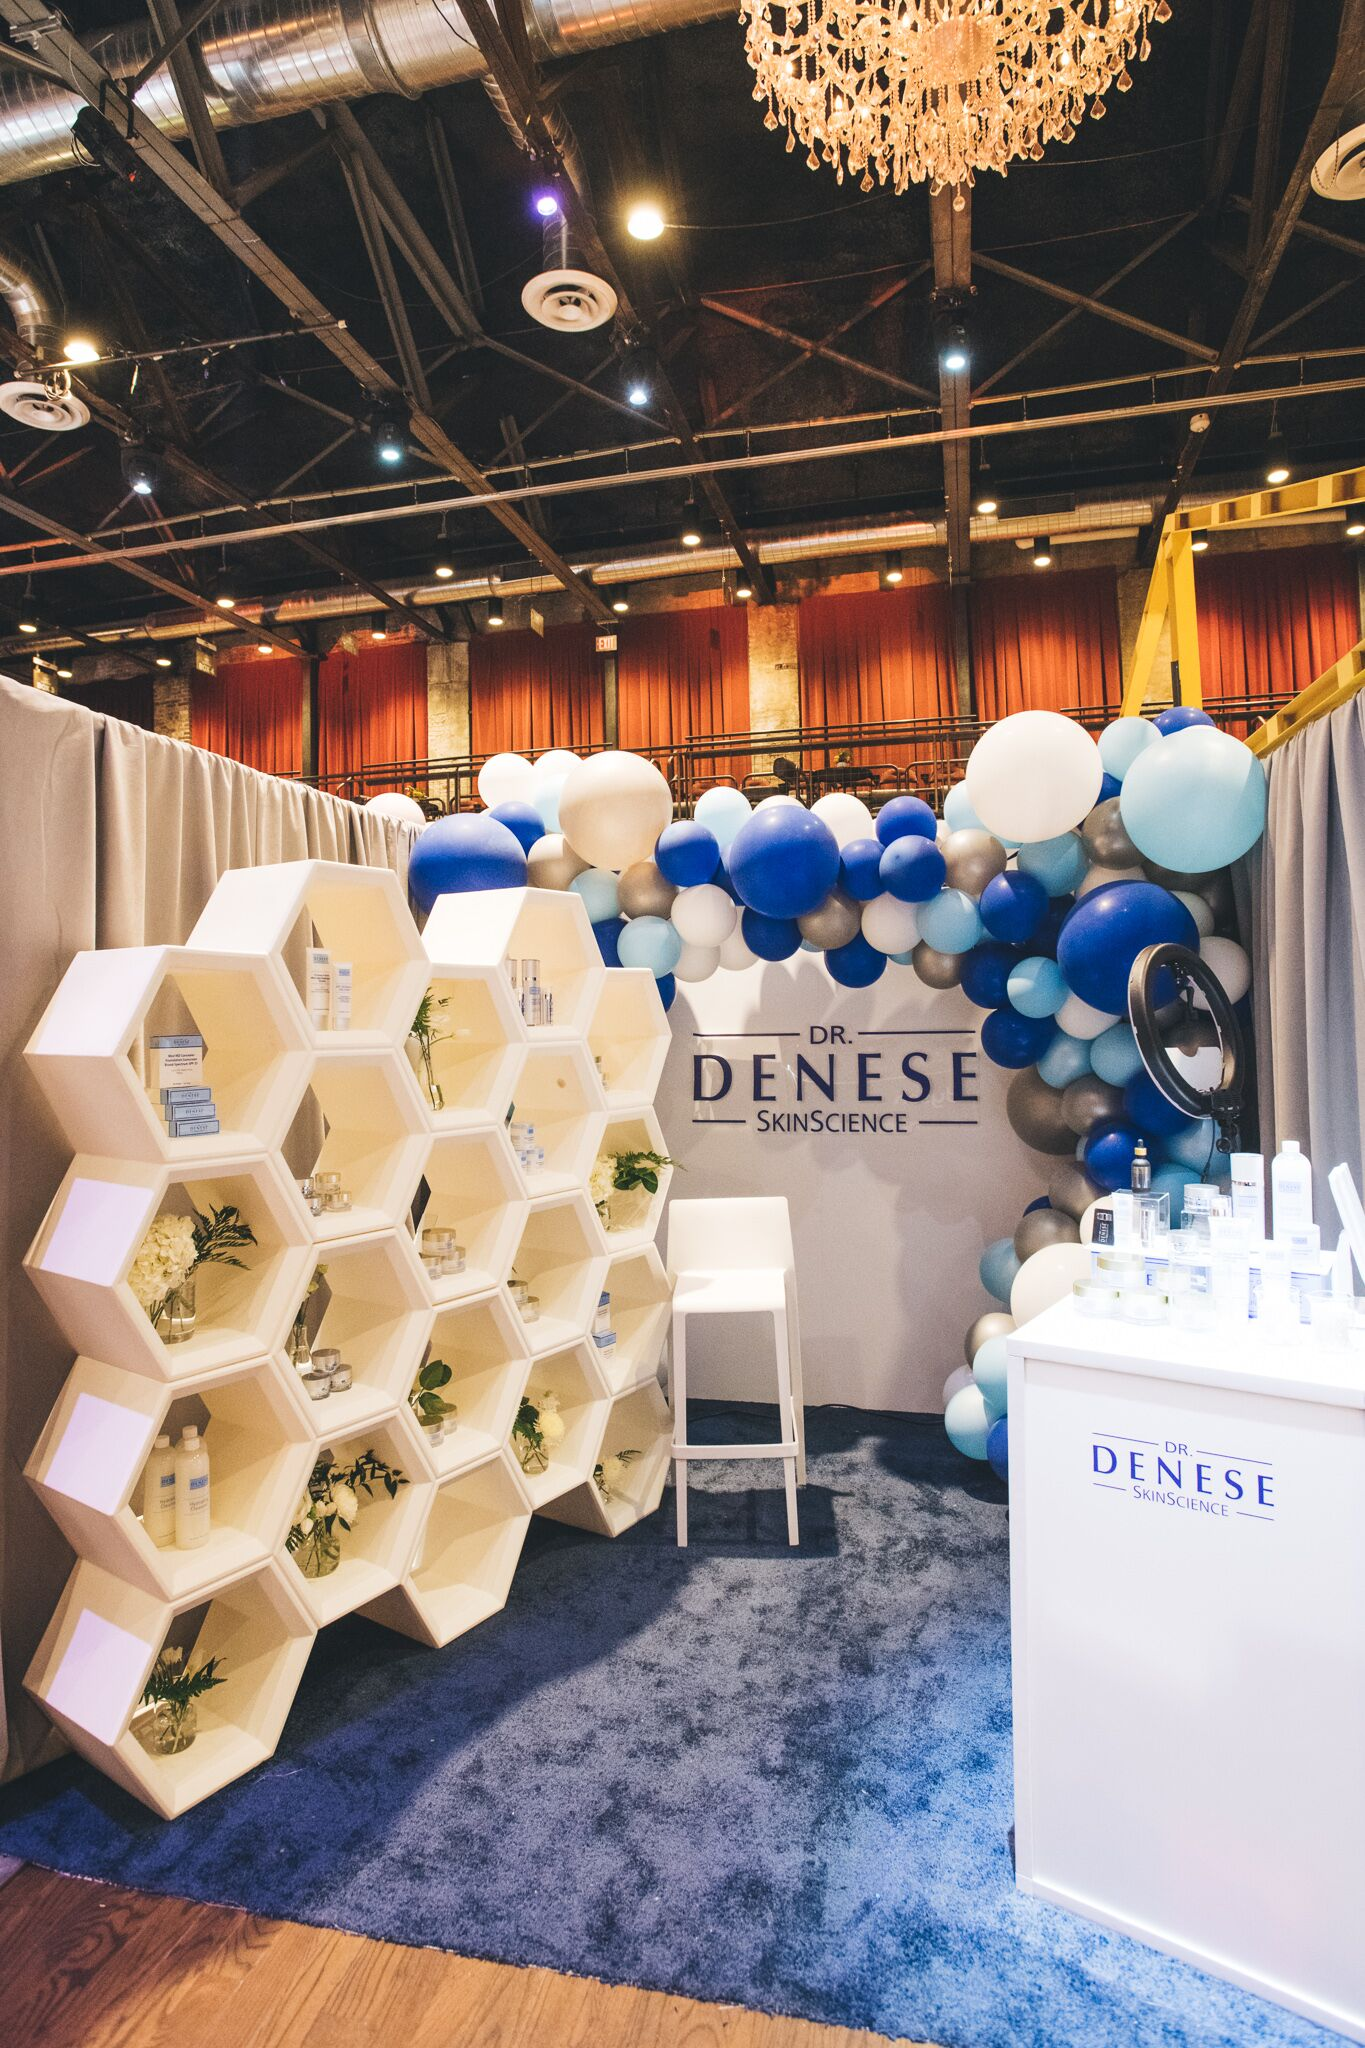 QVC Beauty Bash at The Fillmore, Booth Production for Dr. Denese. Photo: @DRUF